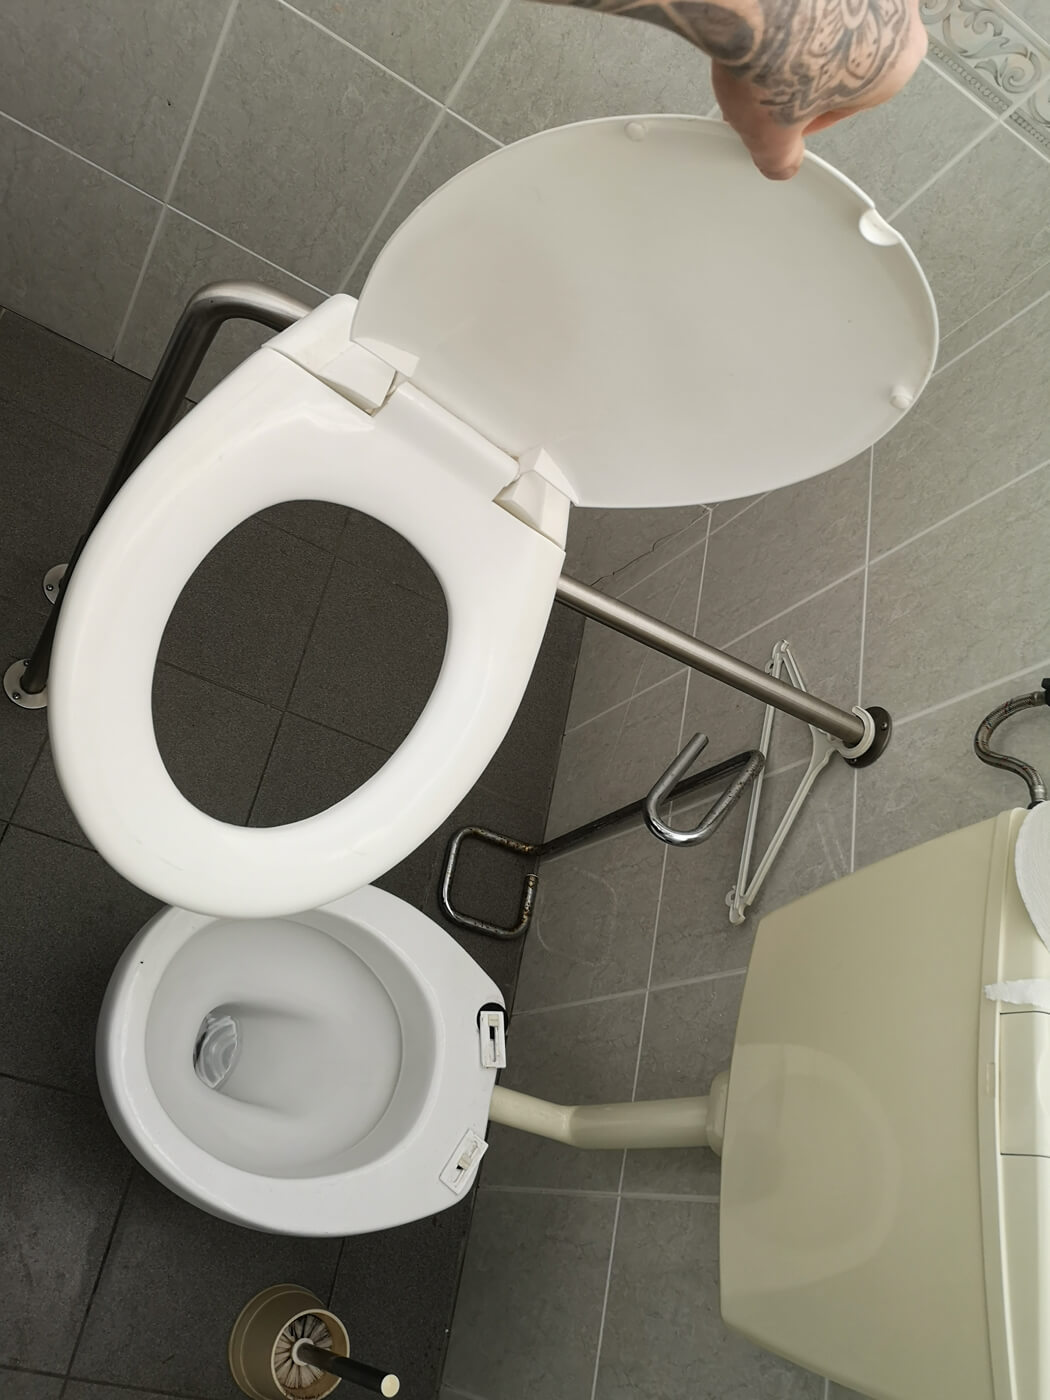 A mans hand can be seen holding a toilet seat which has completely broken from the toilet at Cordoaria Nacional in Lisbon